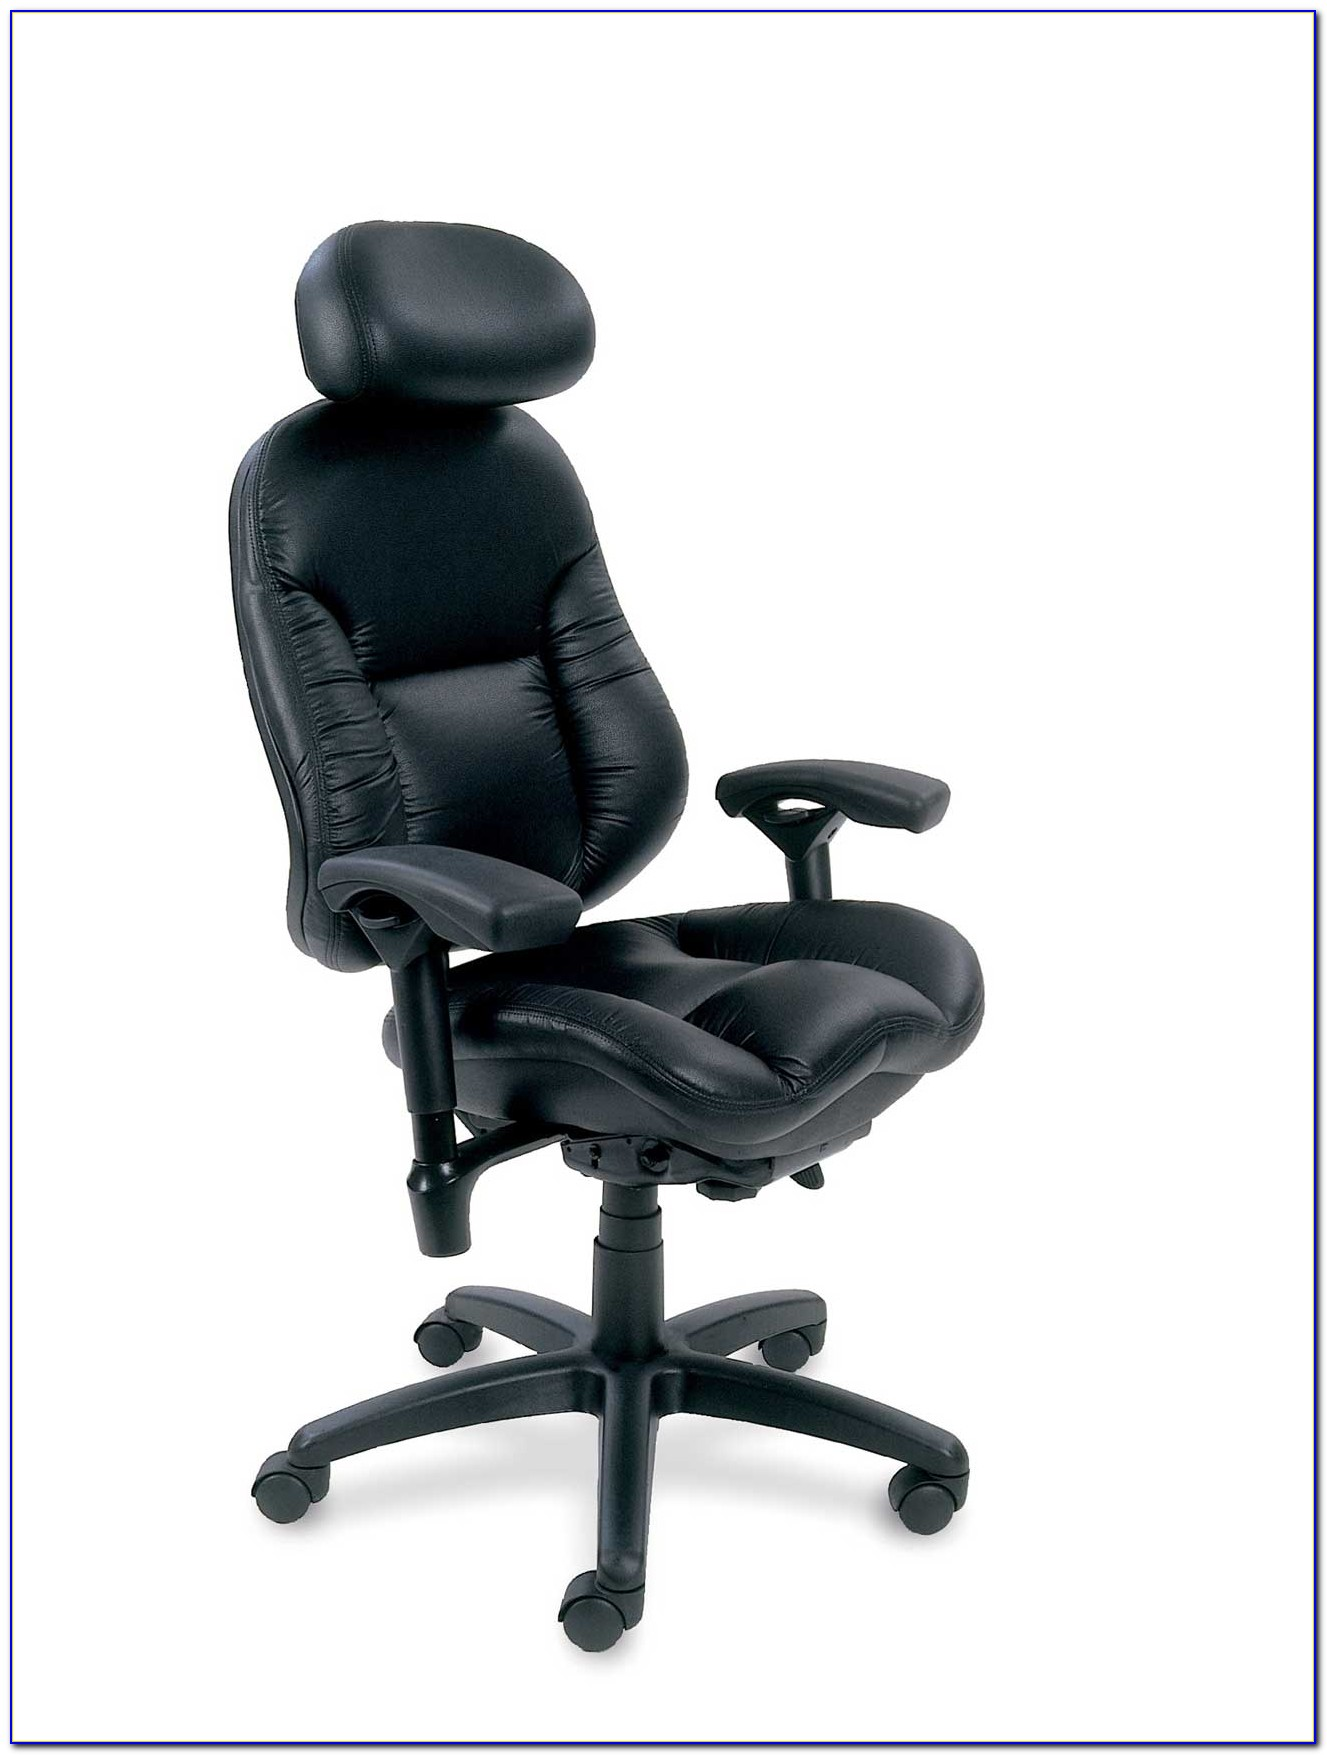 Ergonomic Mesh Office Desk Chair With Adjustable Arms